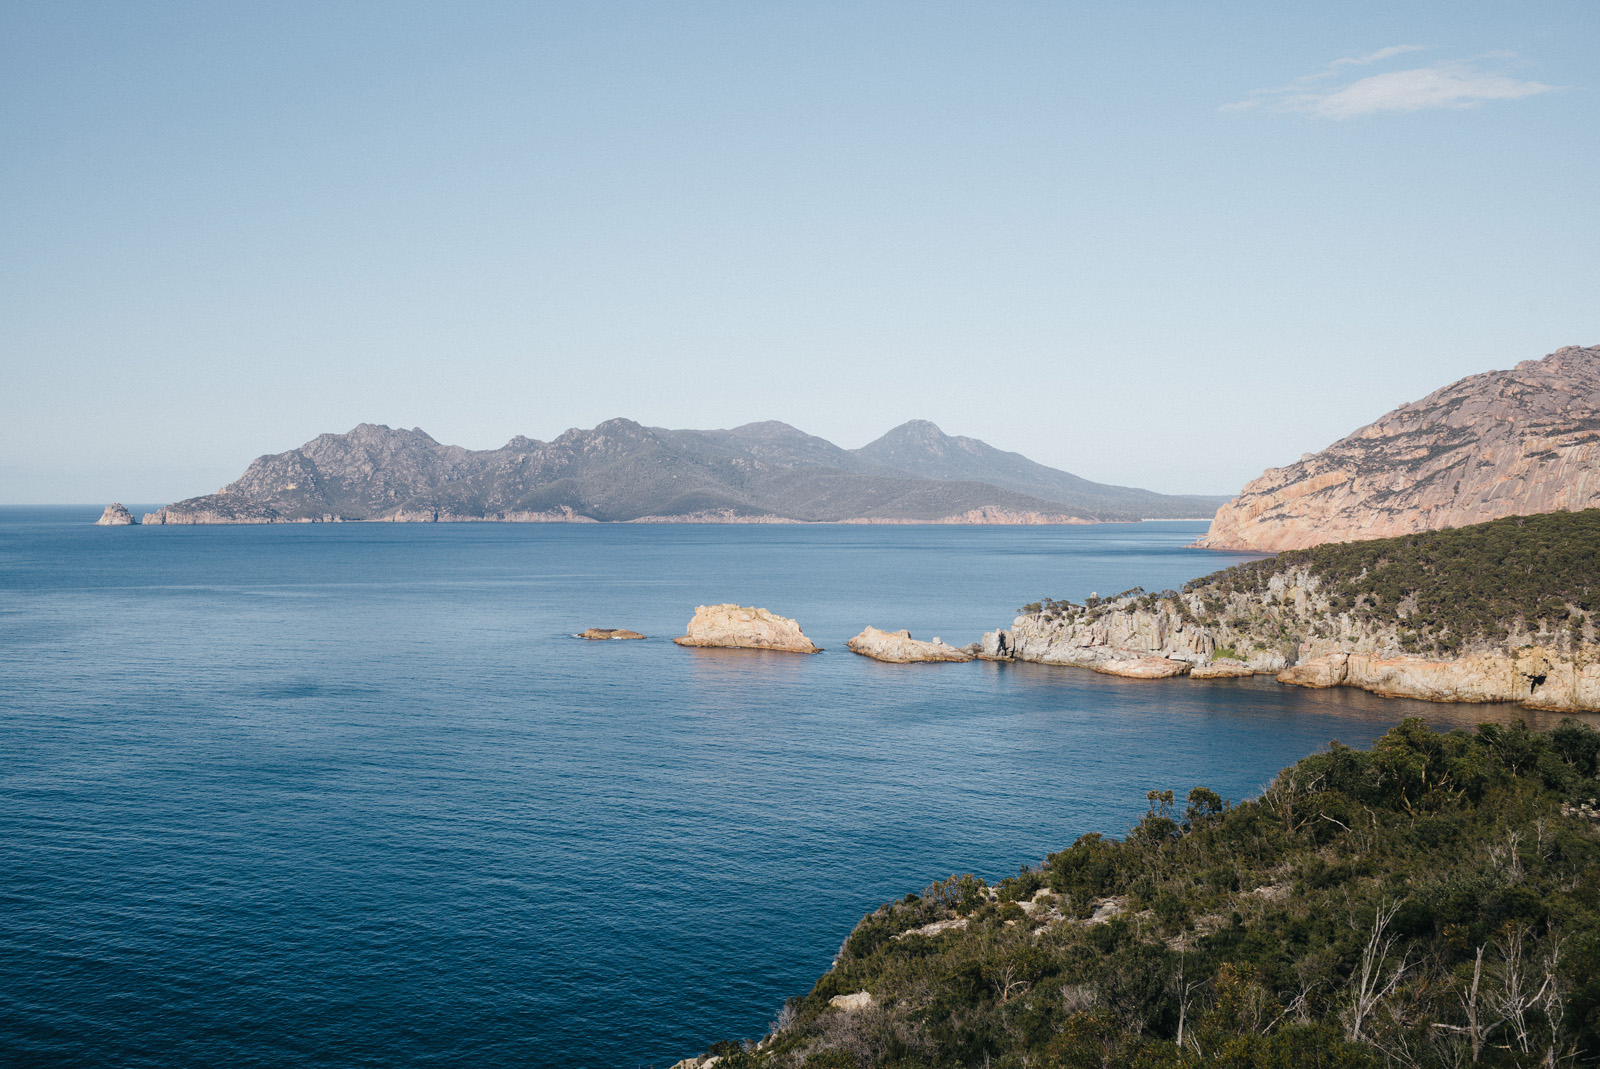 20150912_TasmaniaRoadtrip_101819-Nick-Bedford,-Photographer-Australia, Freycinet National Park, Leica M Typ 240, Road Trip, Summarit 35mm, Tasmania, Travel, VSCO Film.jpg